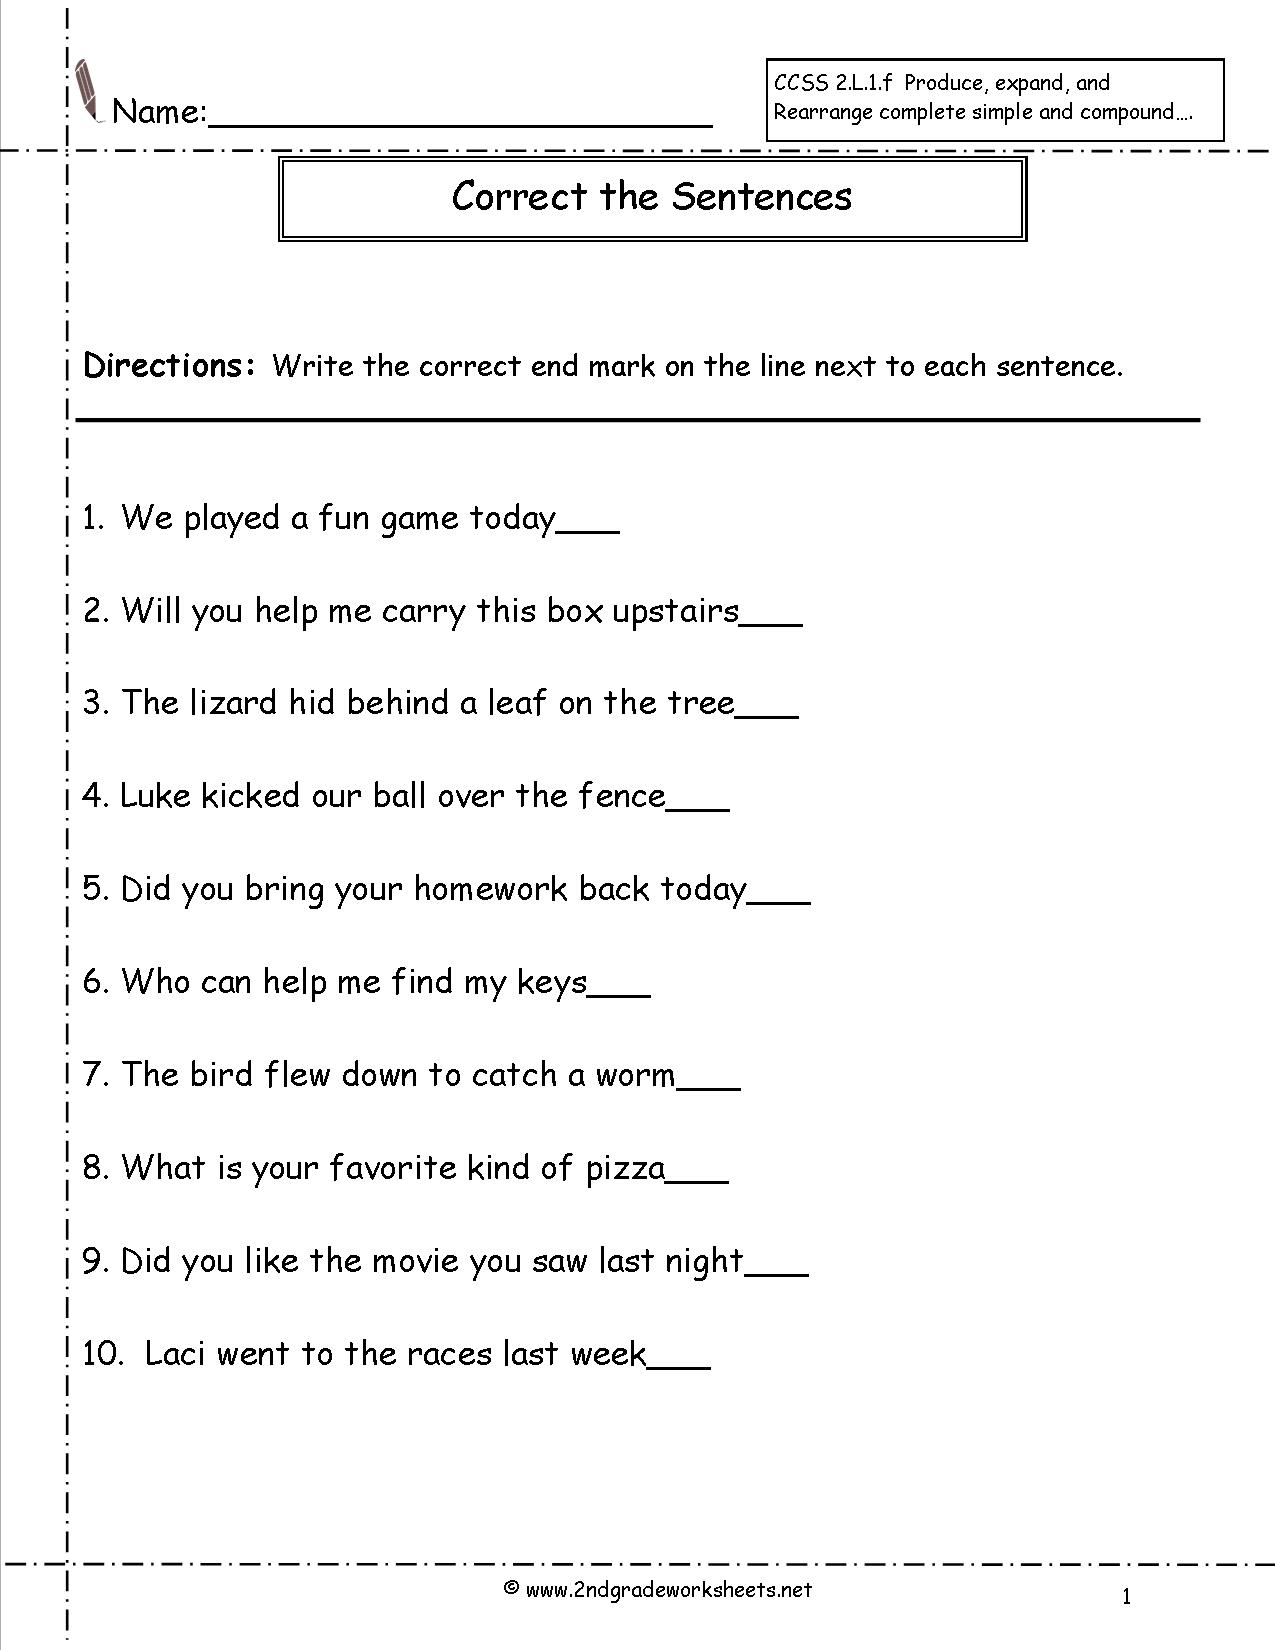 12 Best Images Of When Questions Worksheets